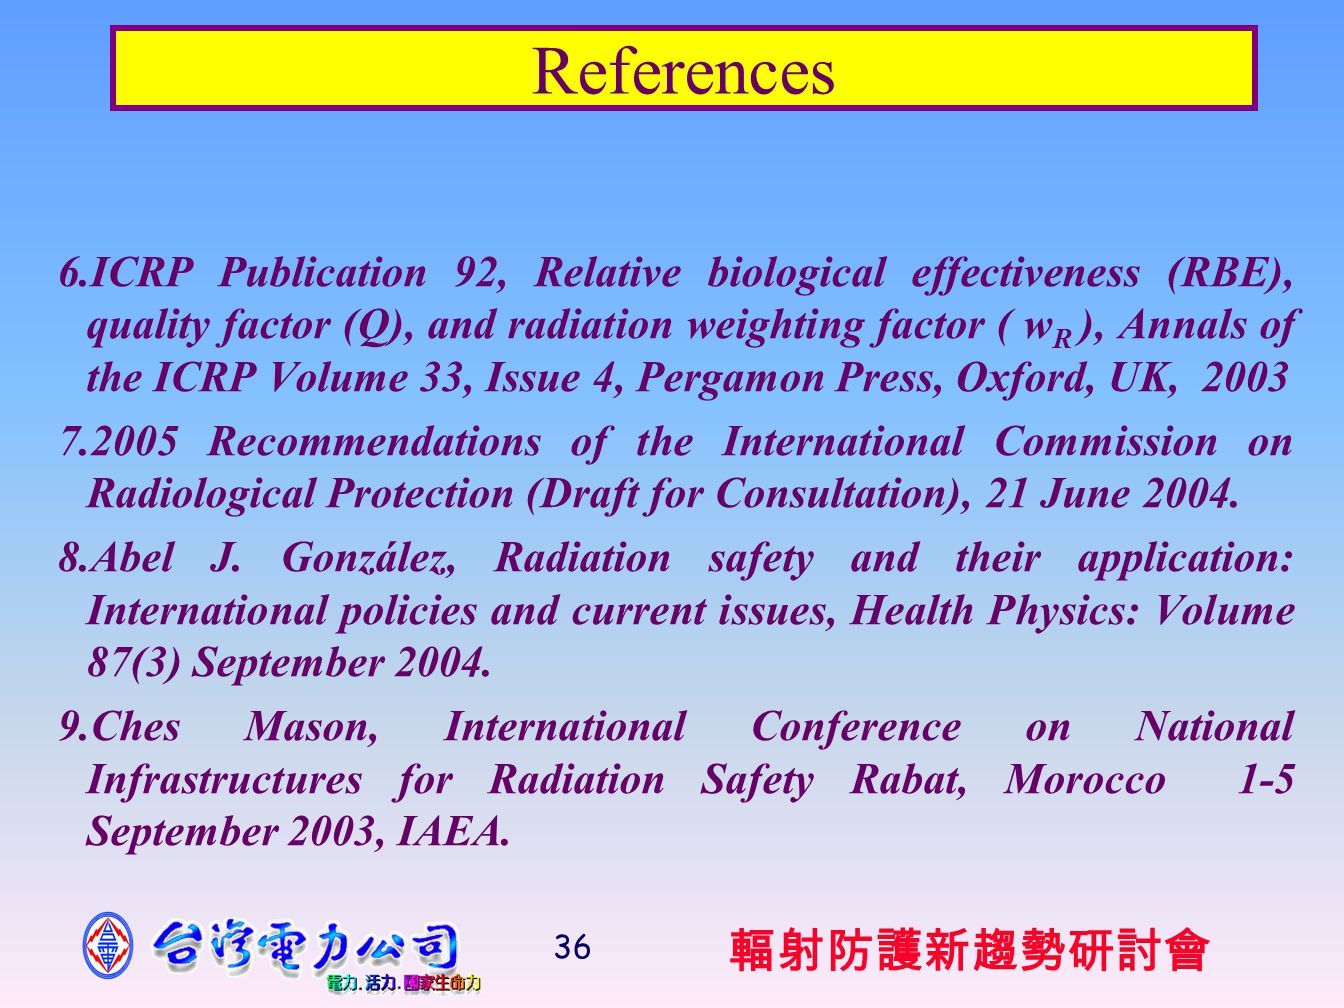 輻射防護新趨勢研討會 36 References 6.ICRP Publication 92, Relative biological effectiveness (RBE), quality factor (Q), and radiation weighting factor ( w R ), Annals of the ICRP Volume 33, Issue 4, Pergamon Press, Oxford, UK, 2003 7.2005 Recommendations of the International Commission on Radiological Protection (Draft for Consultation), 21 June 2004.